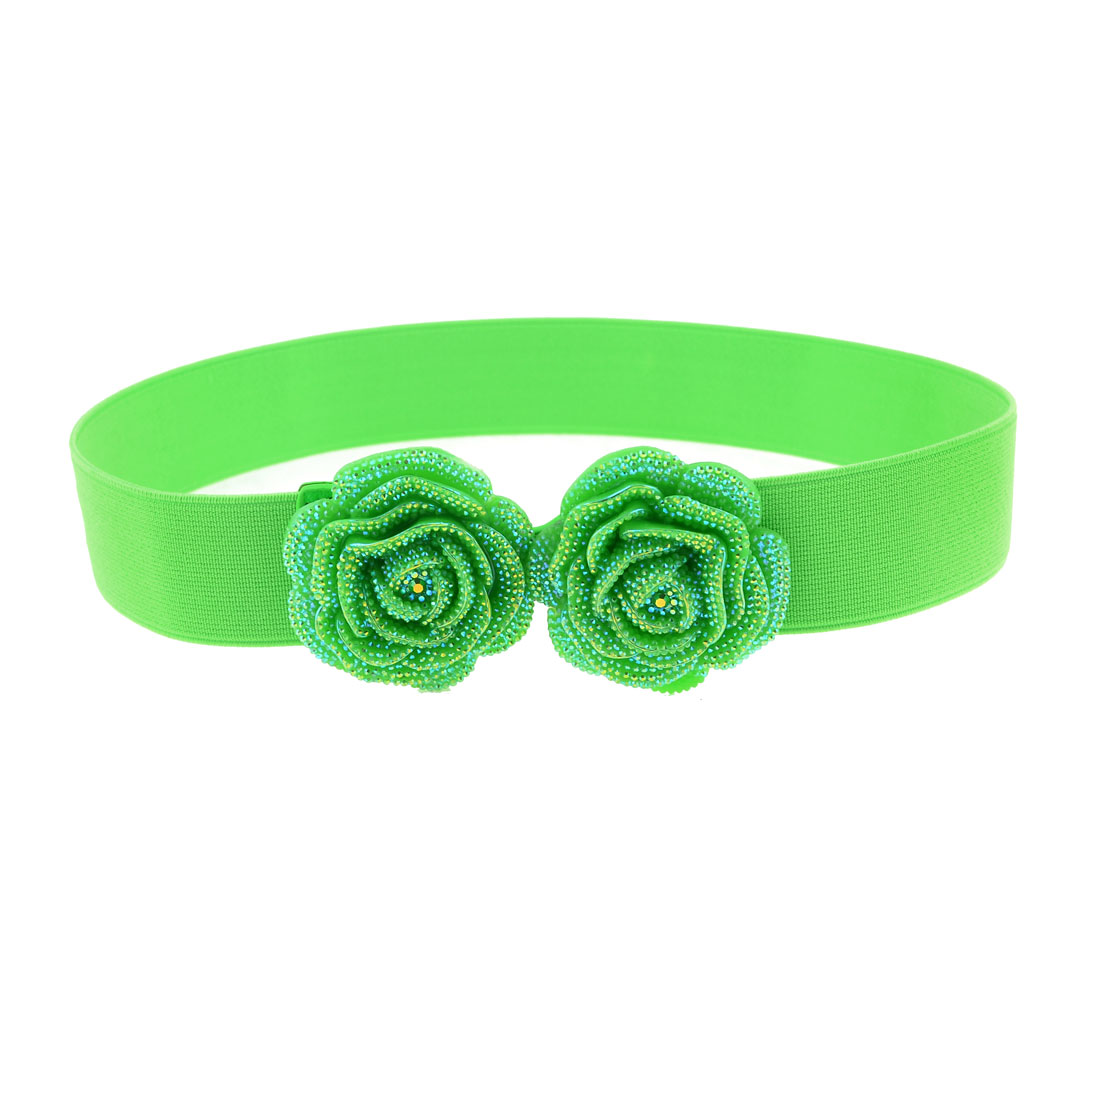 Lady Lime Green Glitter Double Rose Floral Decor Hook Buckle Flexible Waist Belt